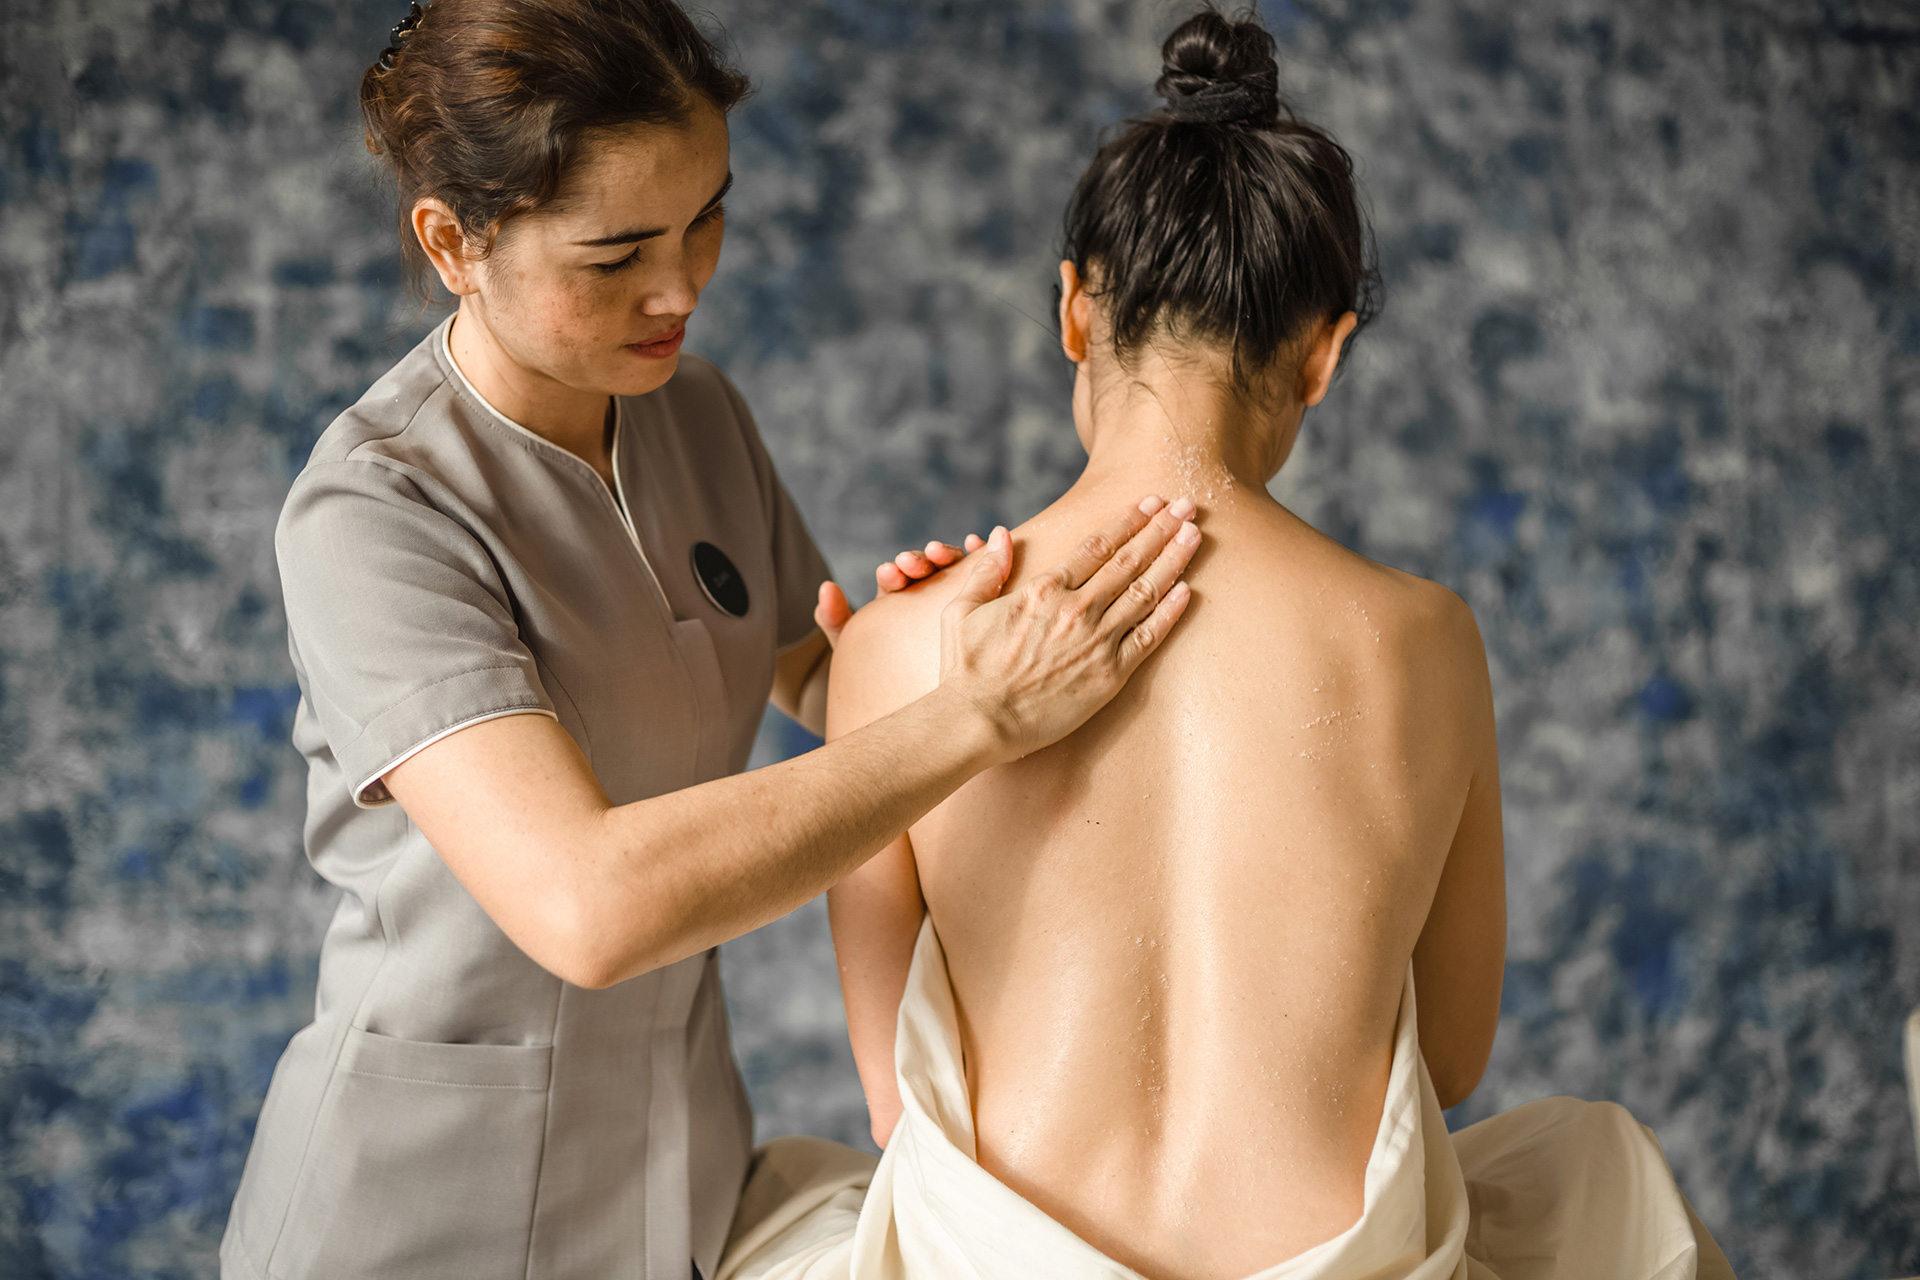 Spa skin, phuket's leading cutting edge health and beauty centre